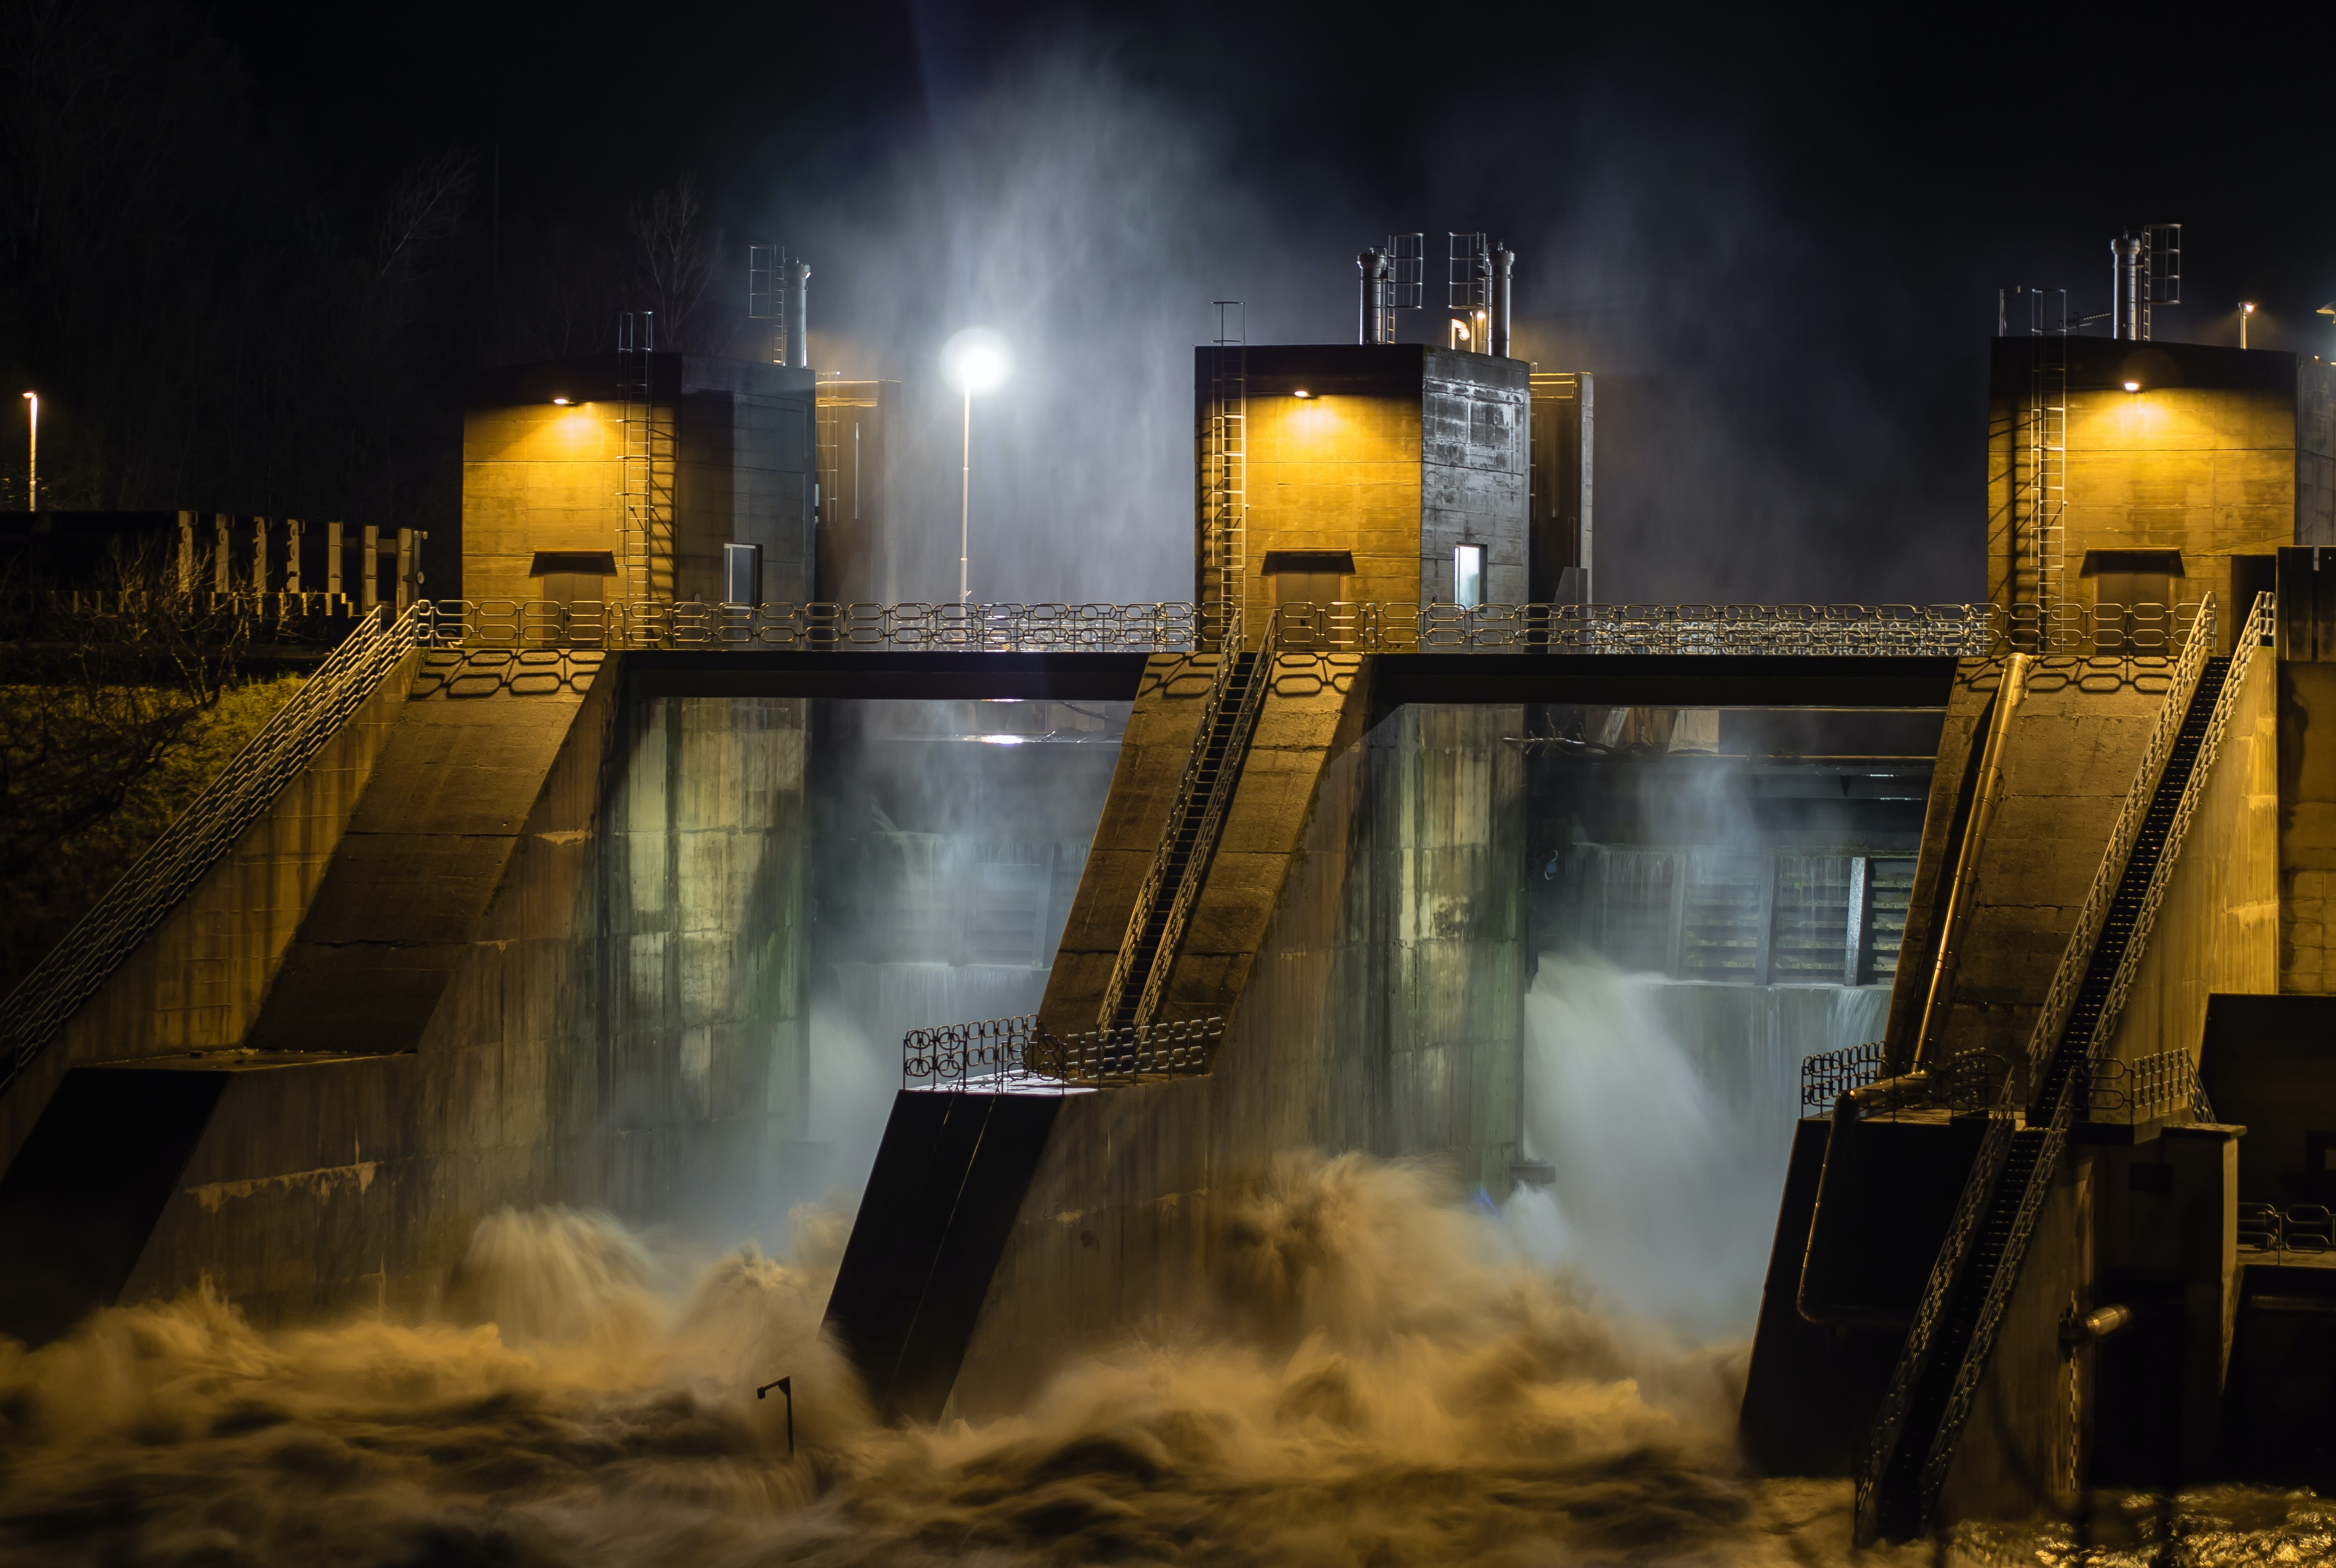 Industrial hydroplant buildings with rushing water on a dark stormy night